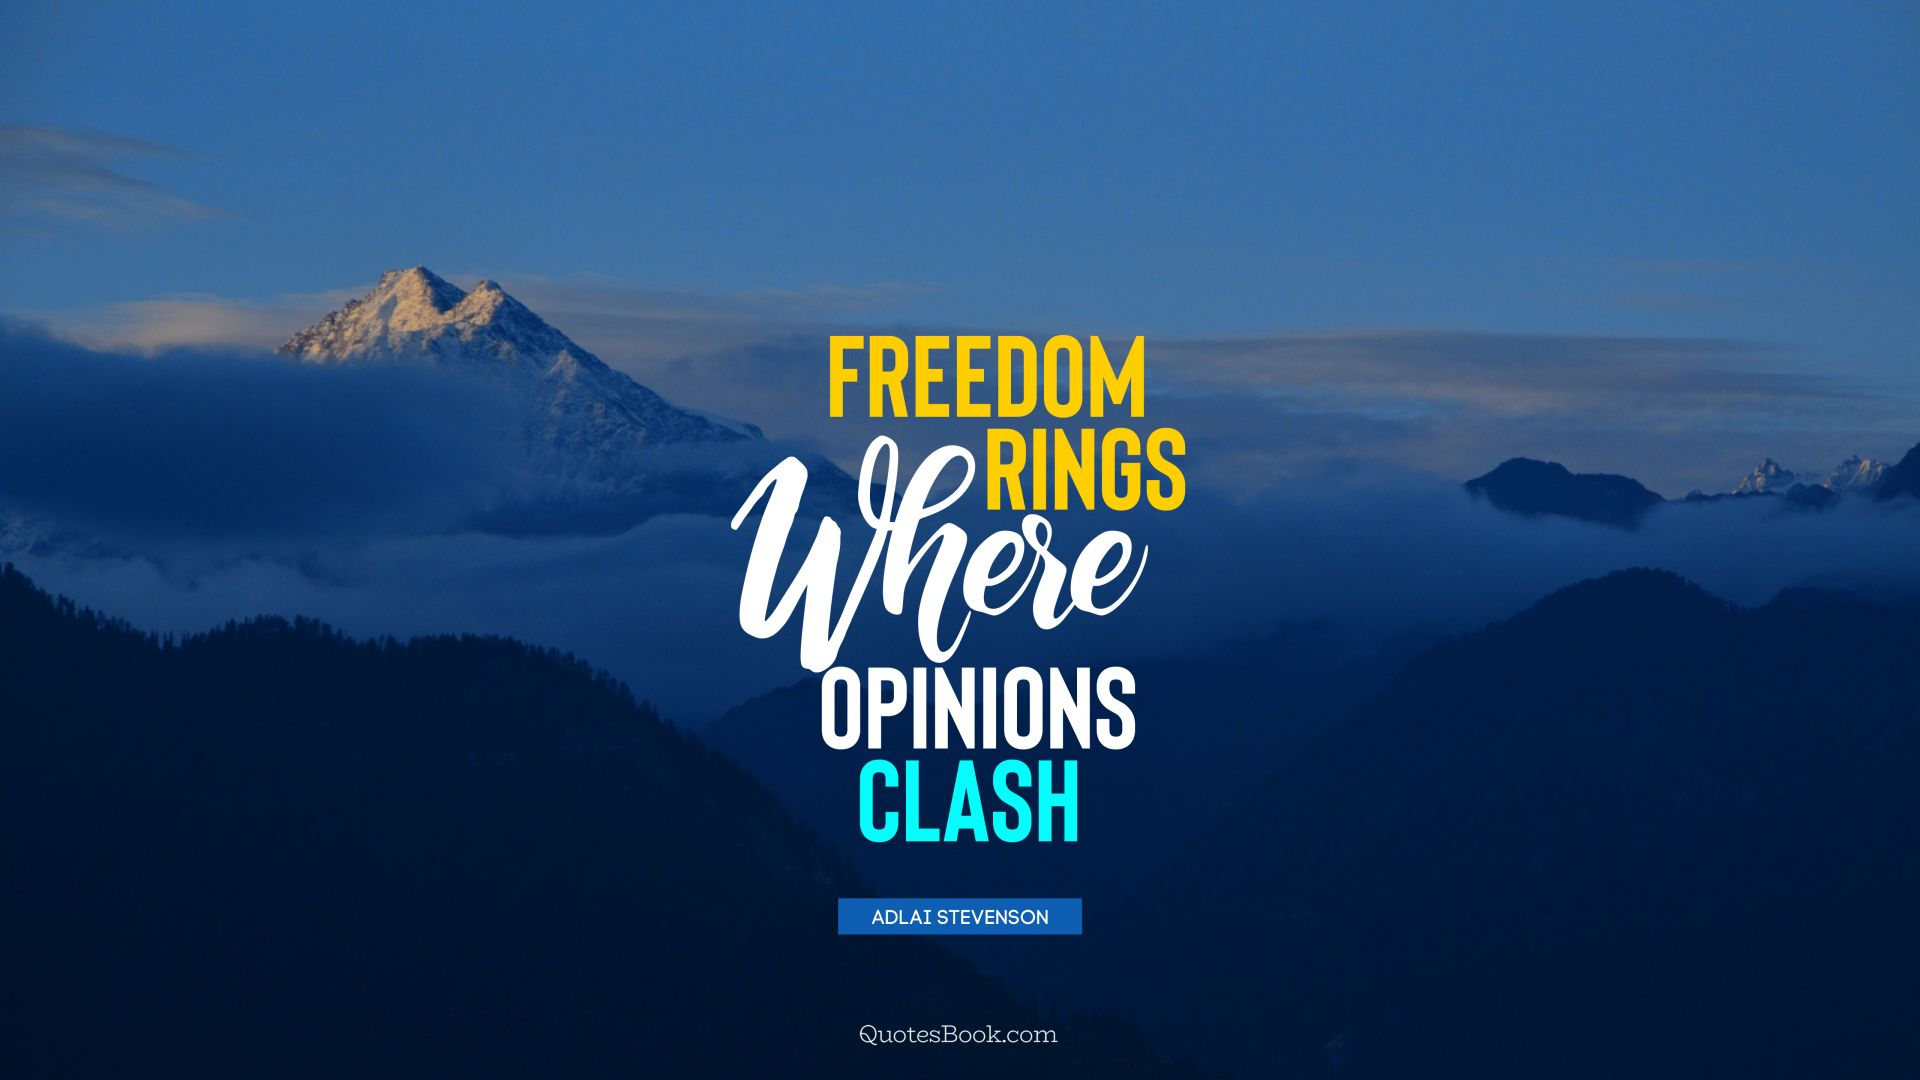 Freedom rings where opinions clash. - Quote by Adlai Stevenson